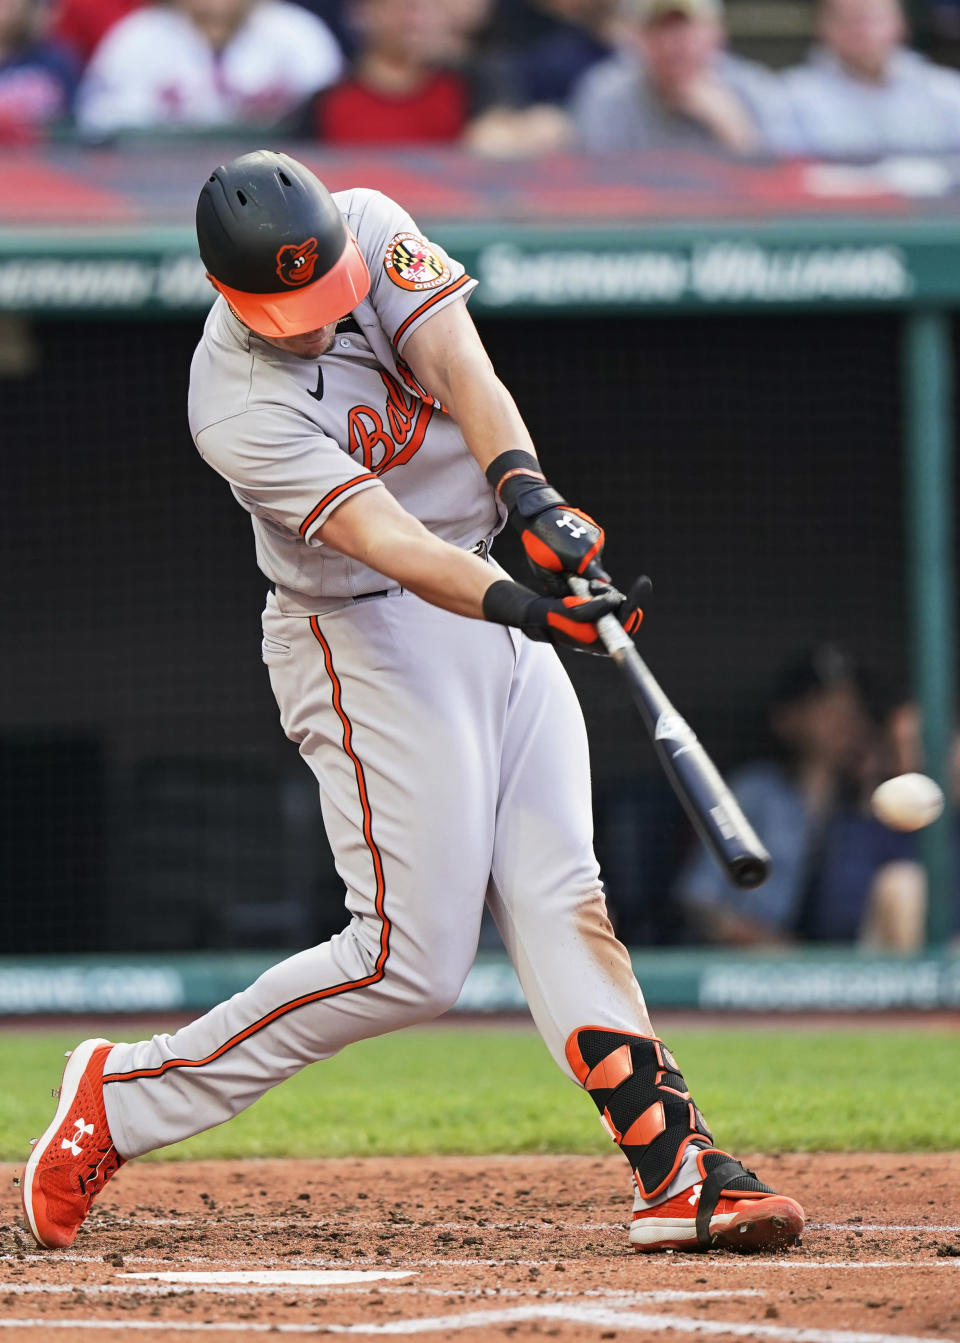 Baltimore Orioles' Ryan Mountcastle hits an RBI single during the third inning of the team's baseball game against the Cleveland Indians on Wednesday, June 16, 2021, in Cleveland. (AP Photo/Tony Dejak)